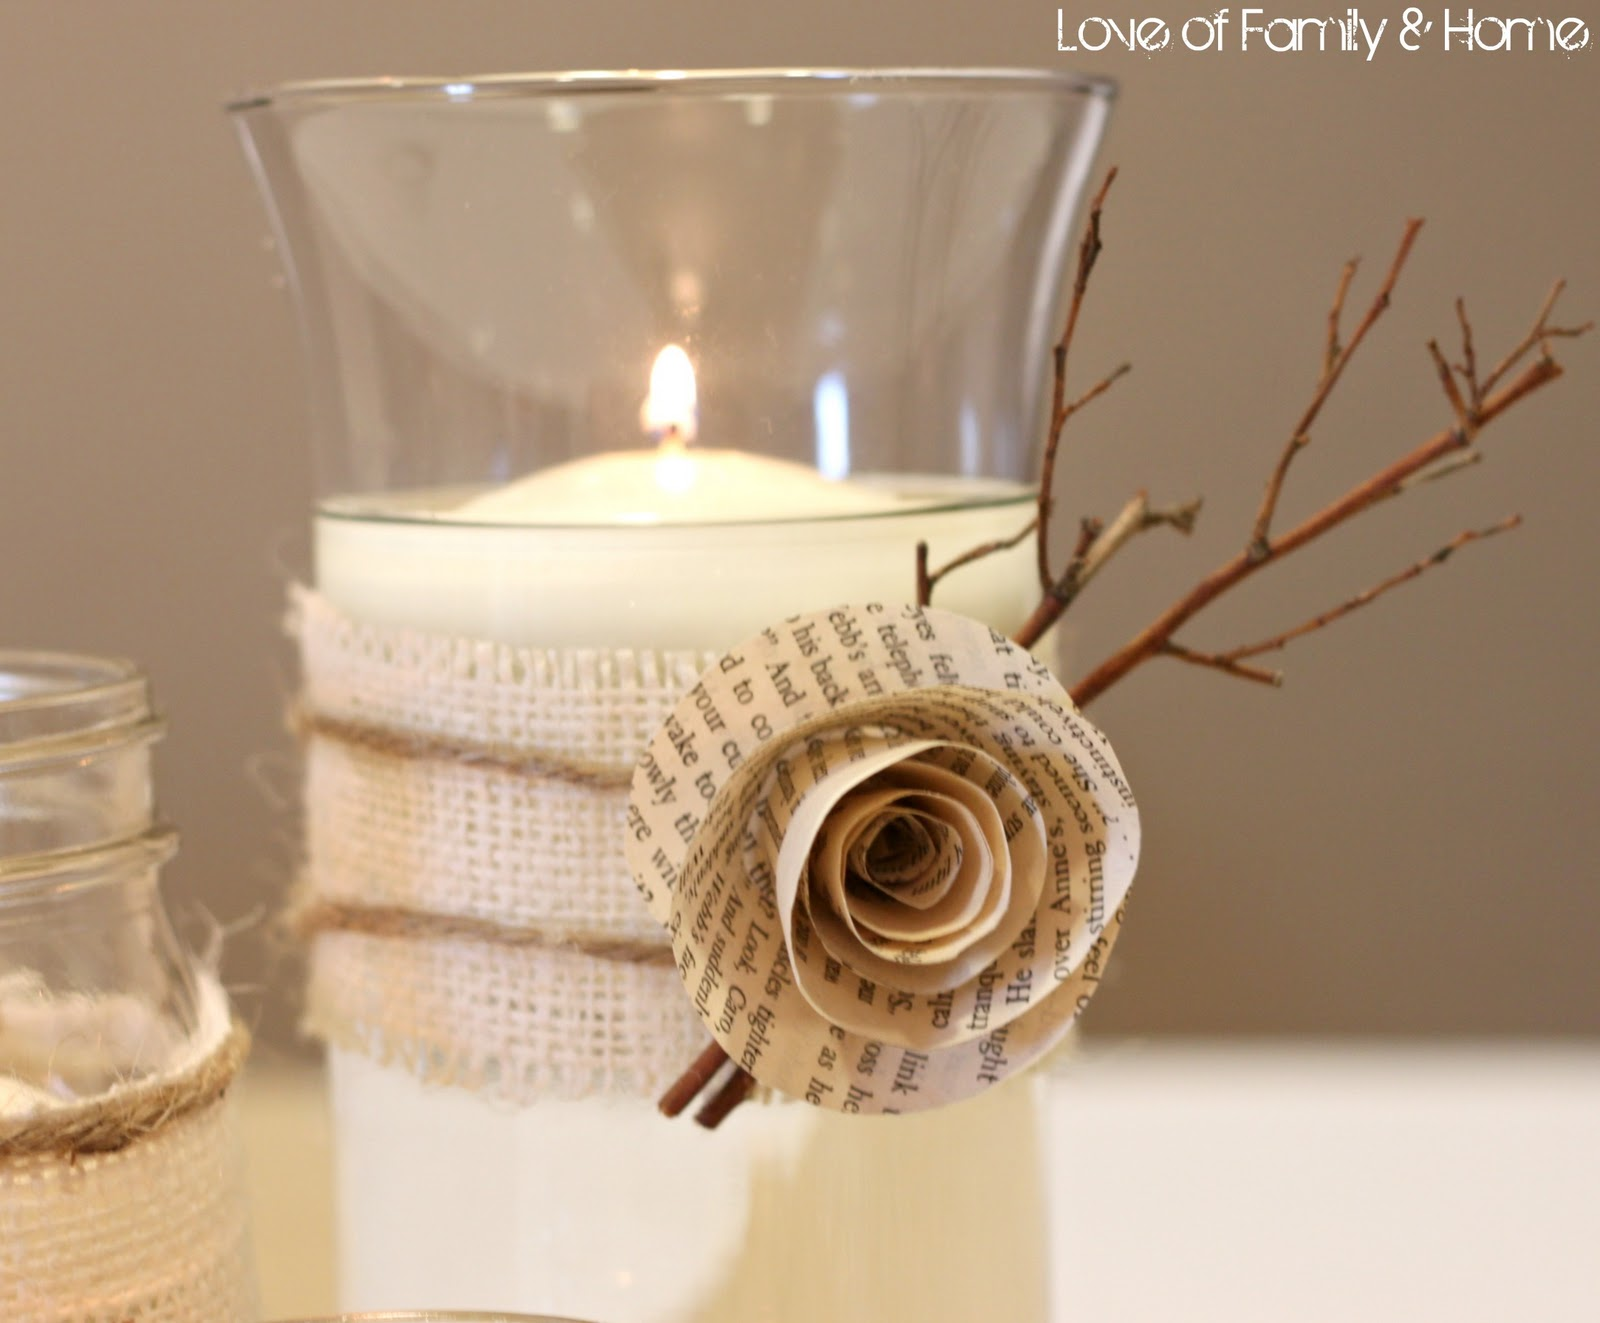 Diy rustic chic fall wedding reveal love of family home solutioingenieria Gallery